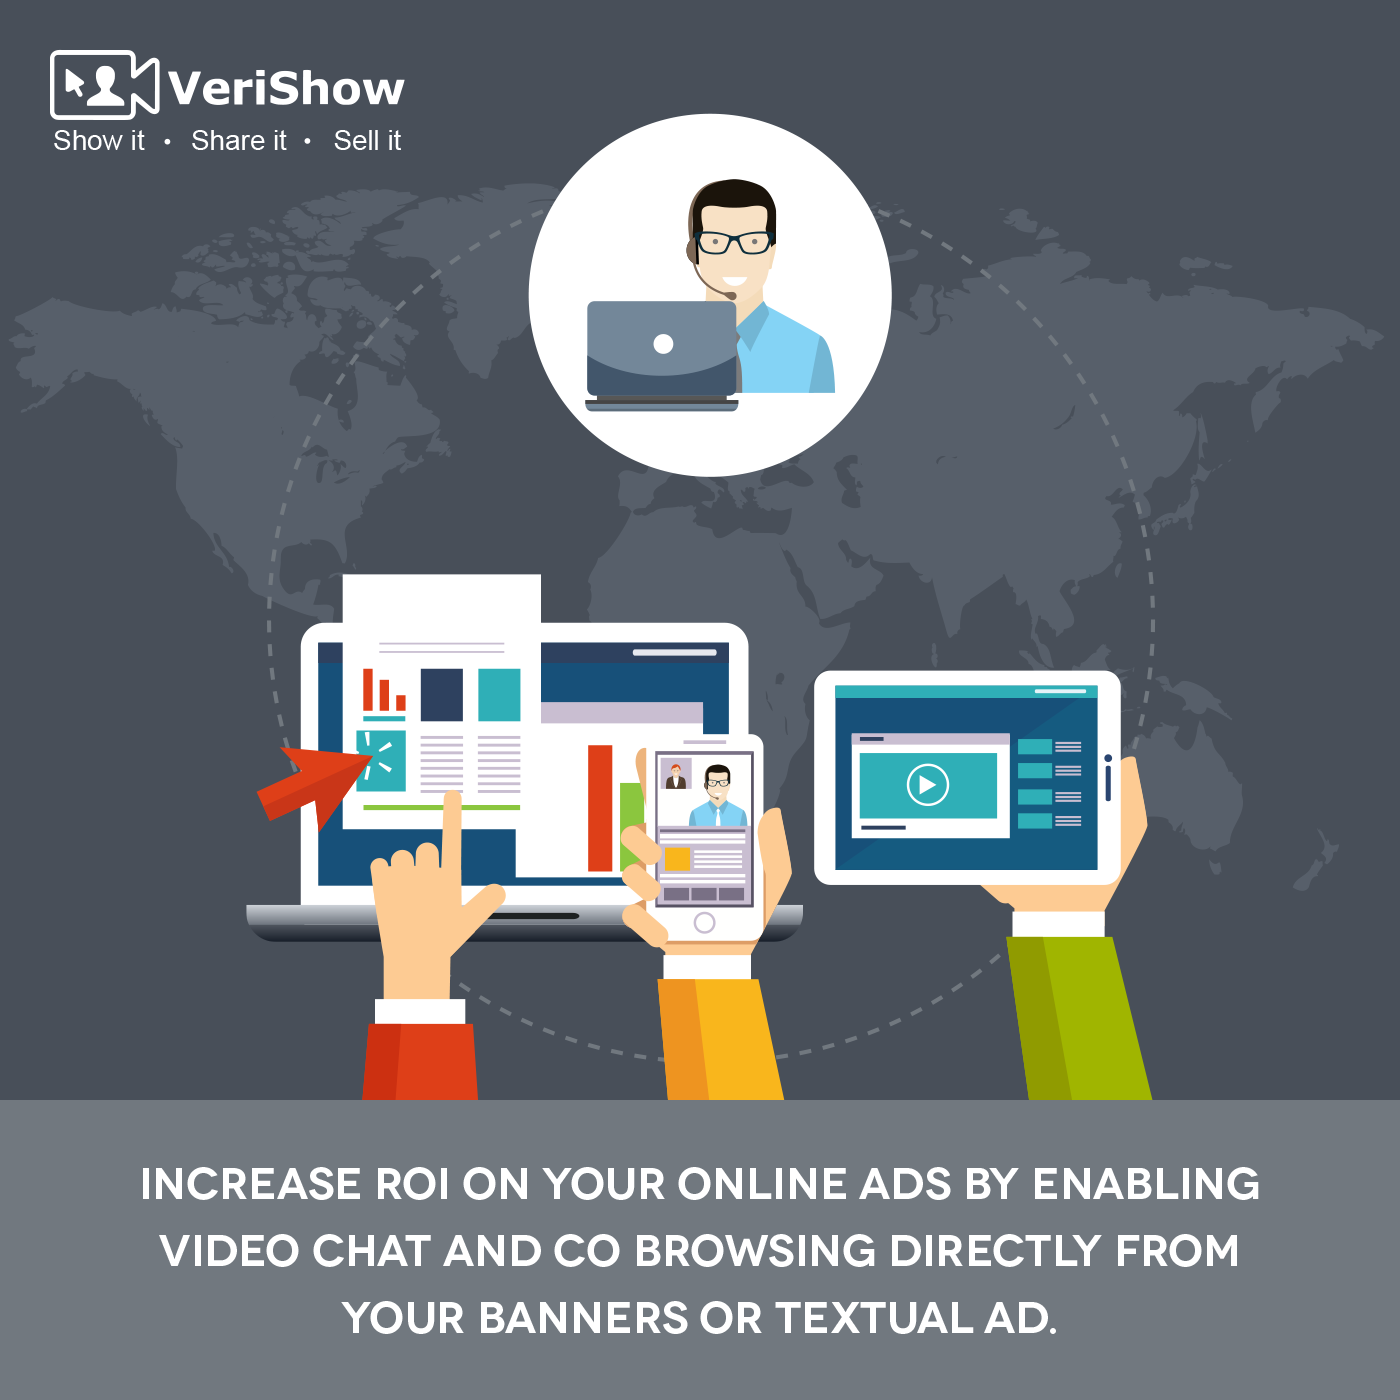 Watch Your Roi Double As Users Take A Demo Of Video Chat And Co Browsing Directly From Your Ads Online Ads Video Chatting Ads